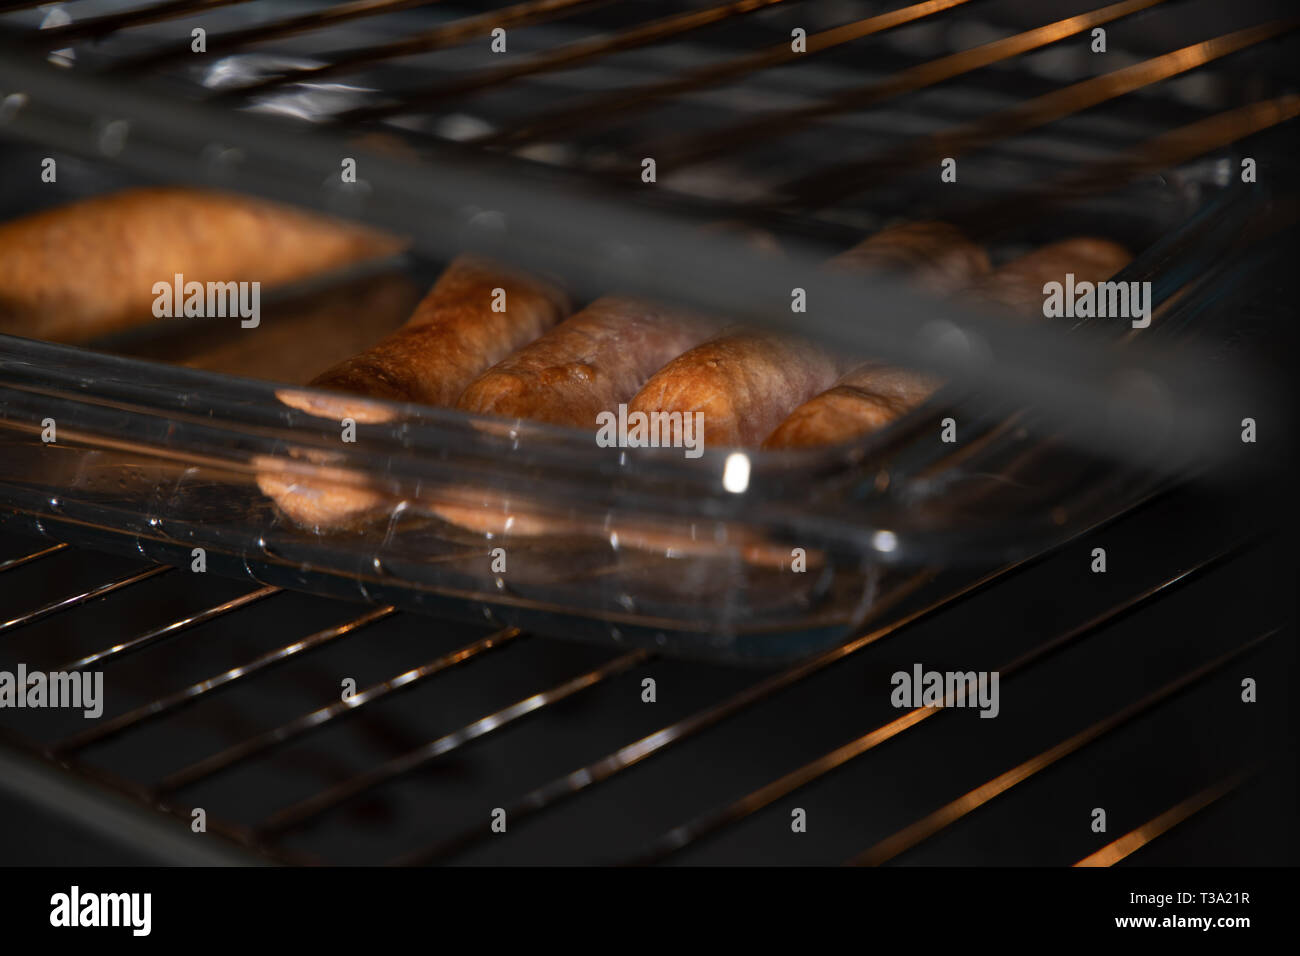 Sausages being baked in the oven - Stock Image